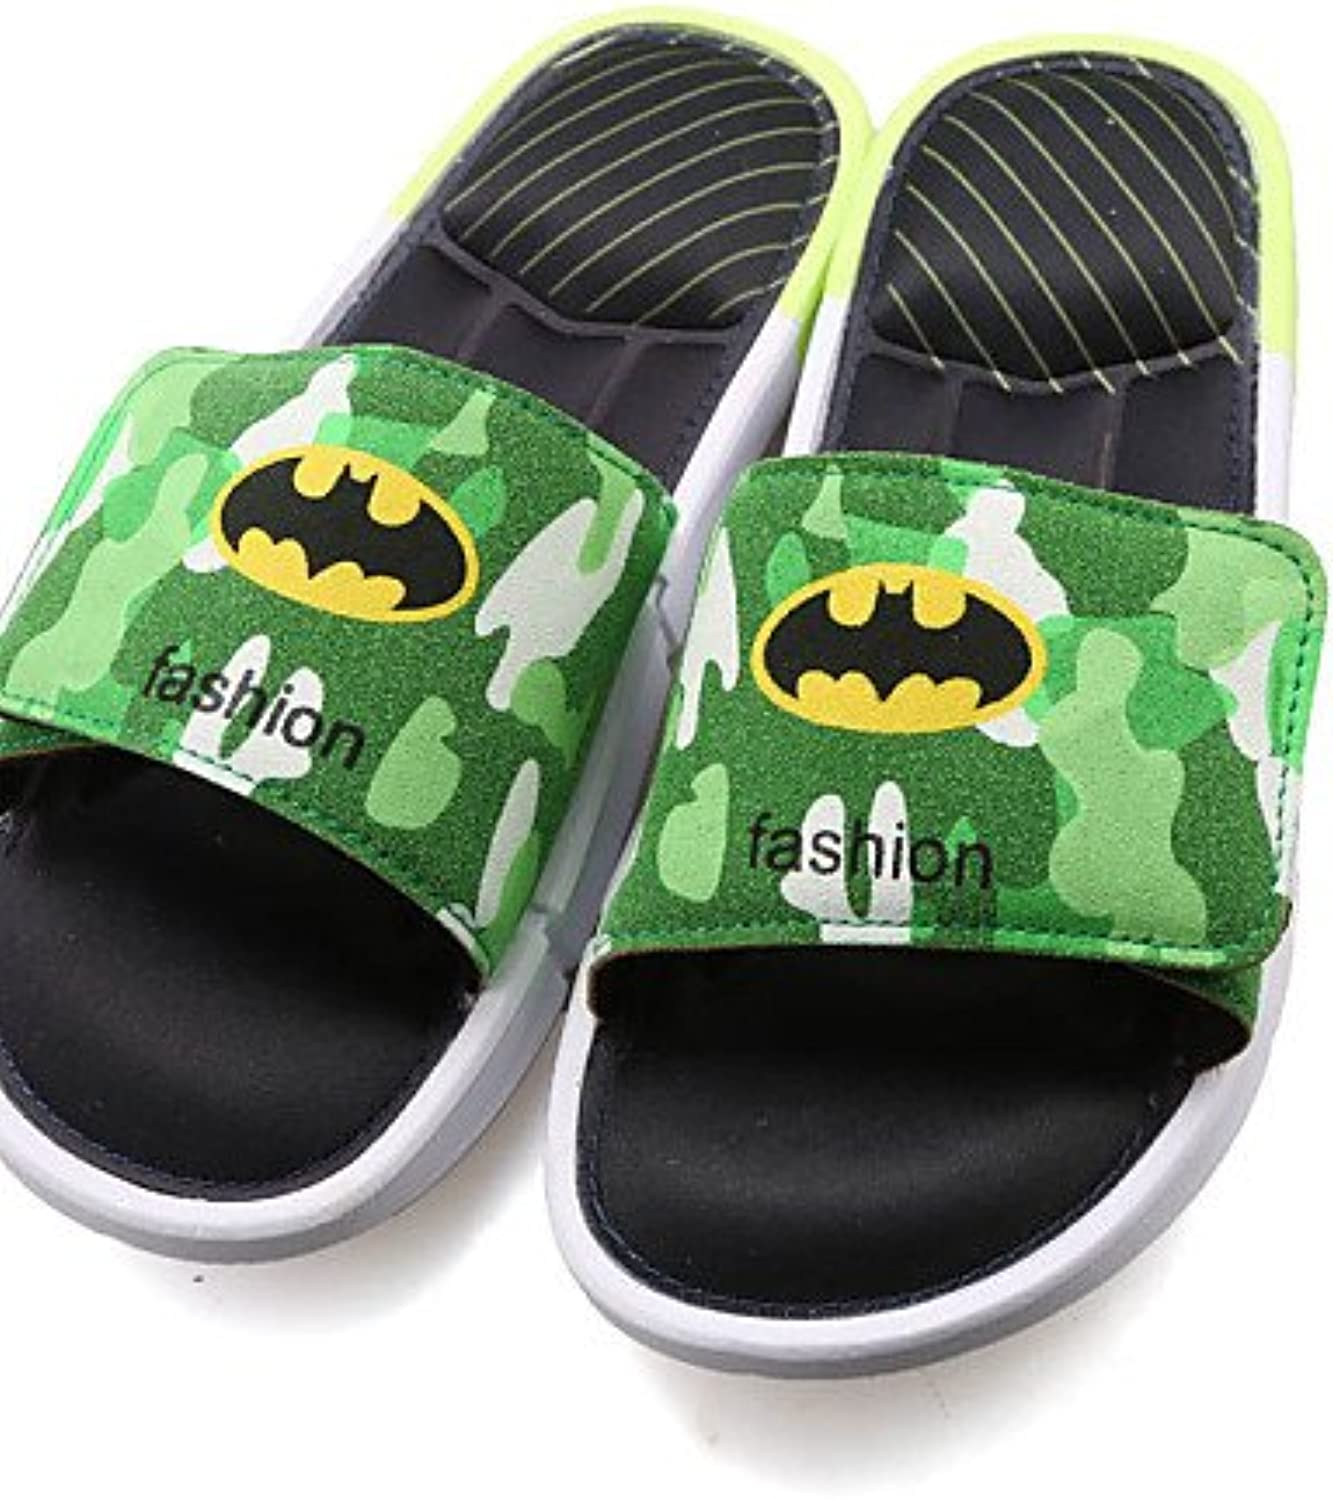 NTX  Men's Slippers Casual Beach Home Fashion Marvel Heroes Slippers Multicolor